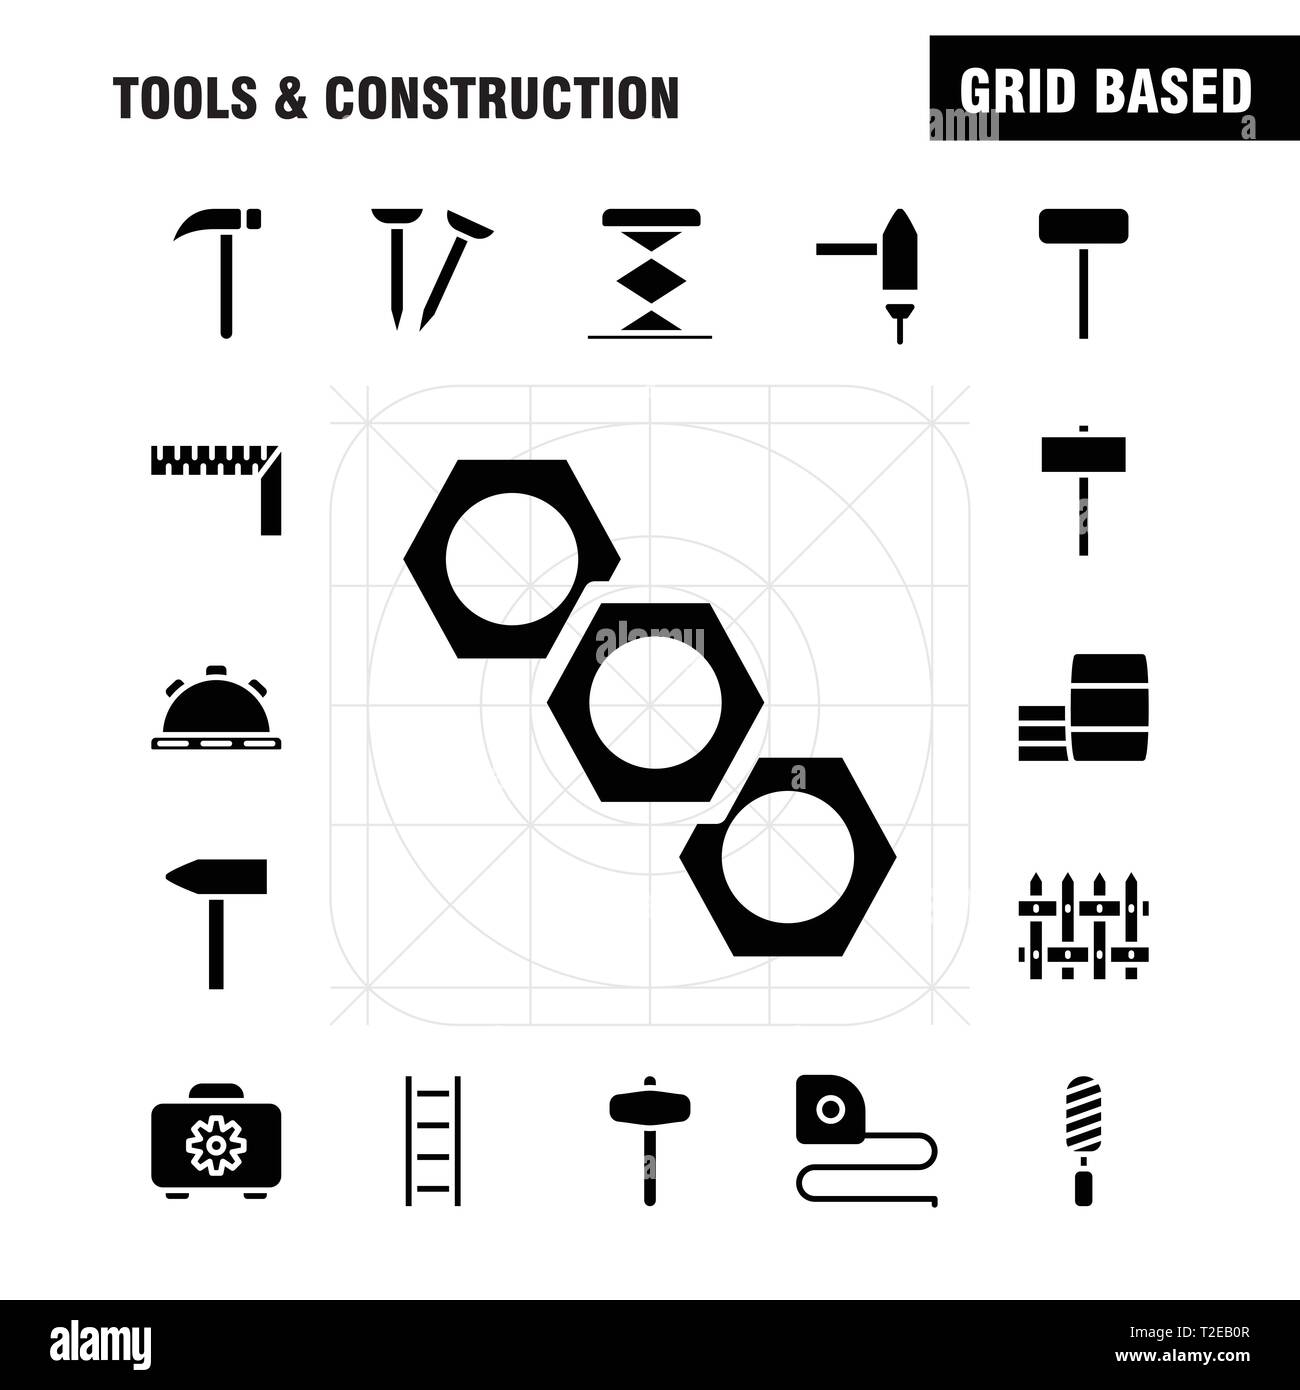 Tools And Construction Solid Glyph Icon Pack For Designers And Developers. Icons Of Box, Case, Cog, Construction, Construction, Measure, Tape, Tape Ve - Stock Image